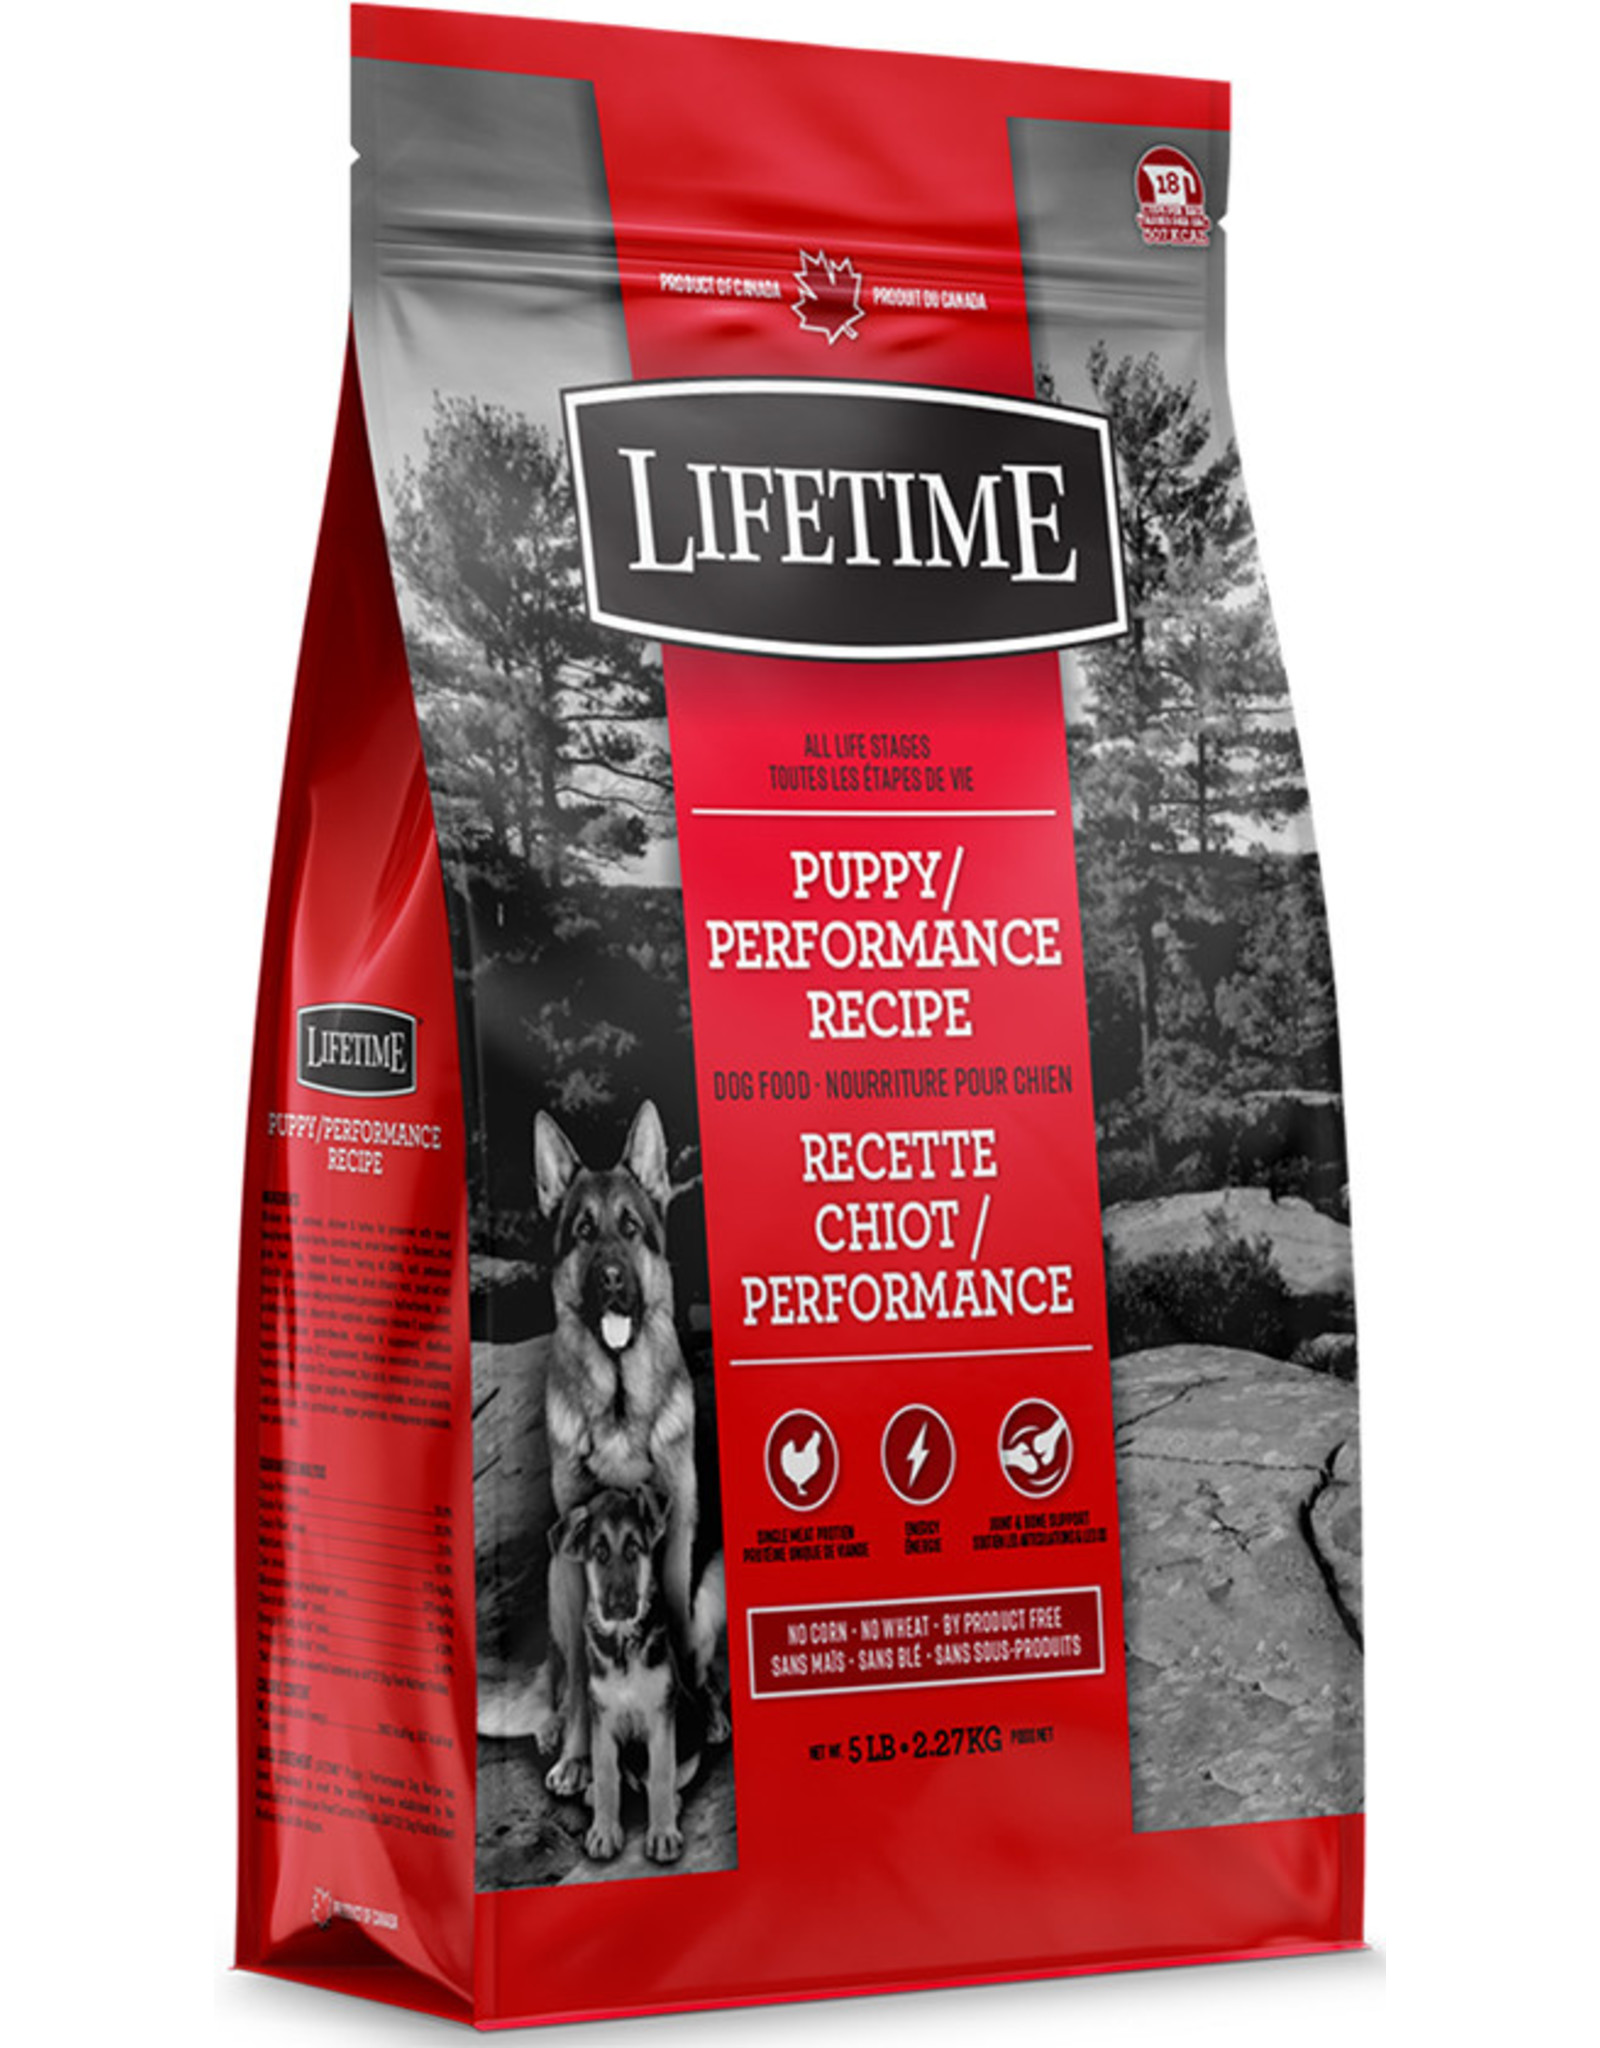 Lifetime Lifetime Puppy/Performance 2.27kg